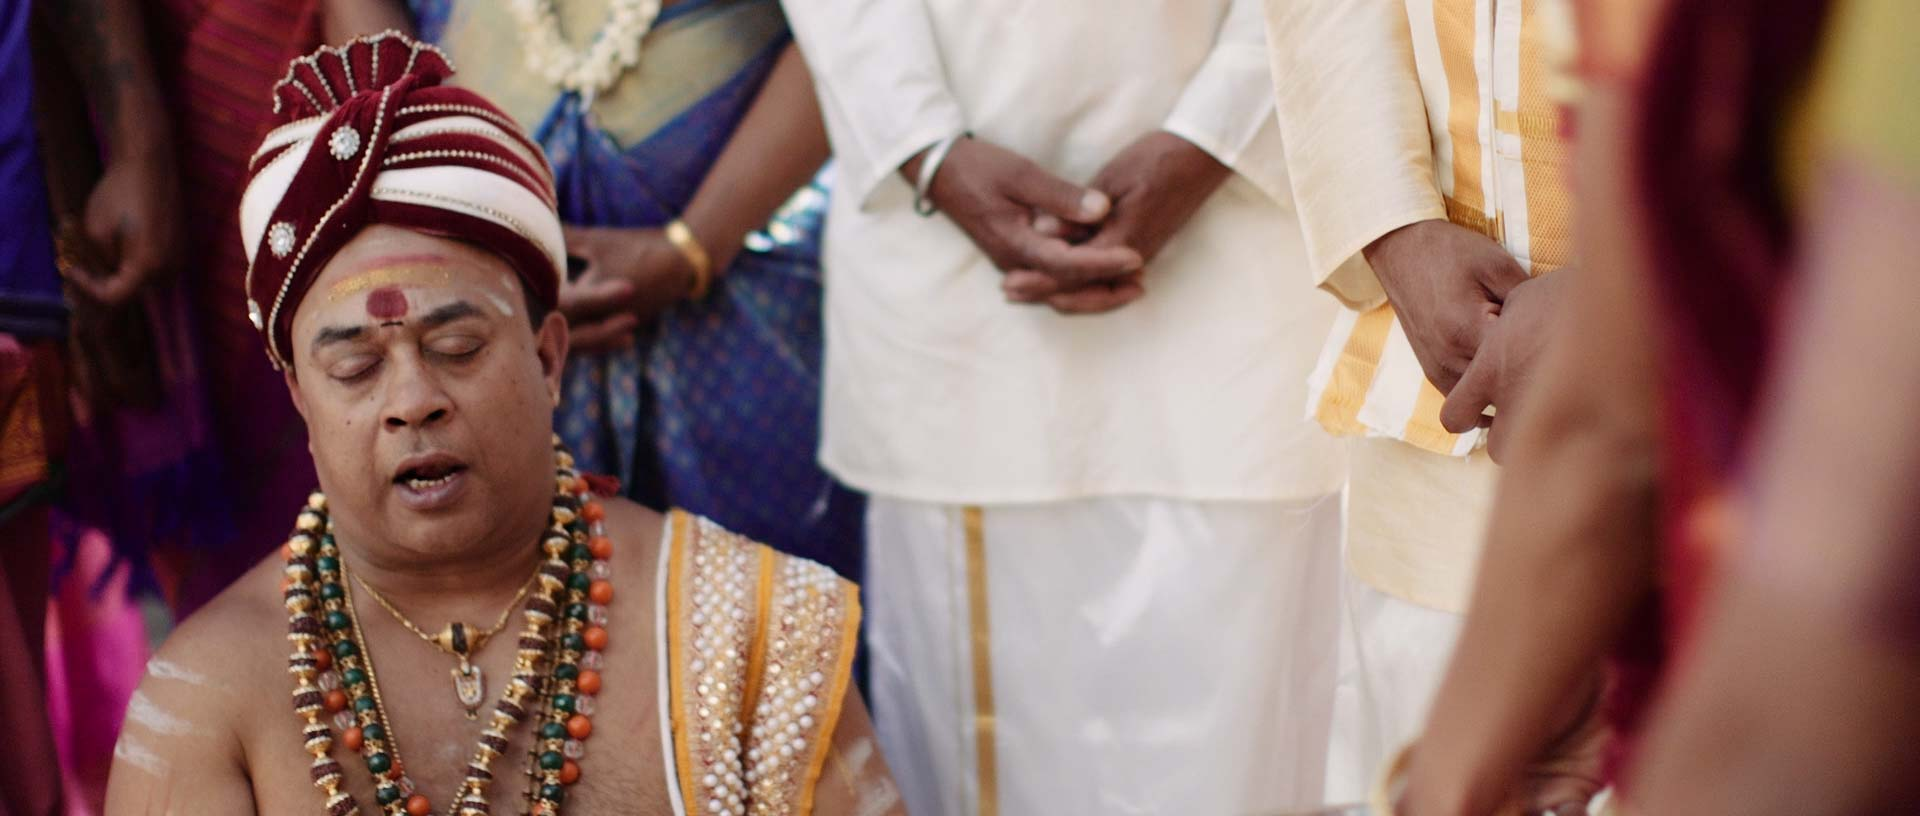 Sri Lankan Hindu Priest Wedding Ceremony